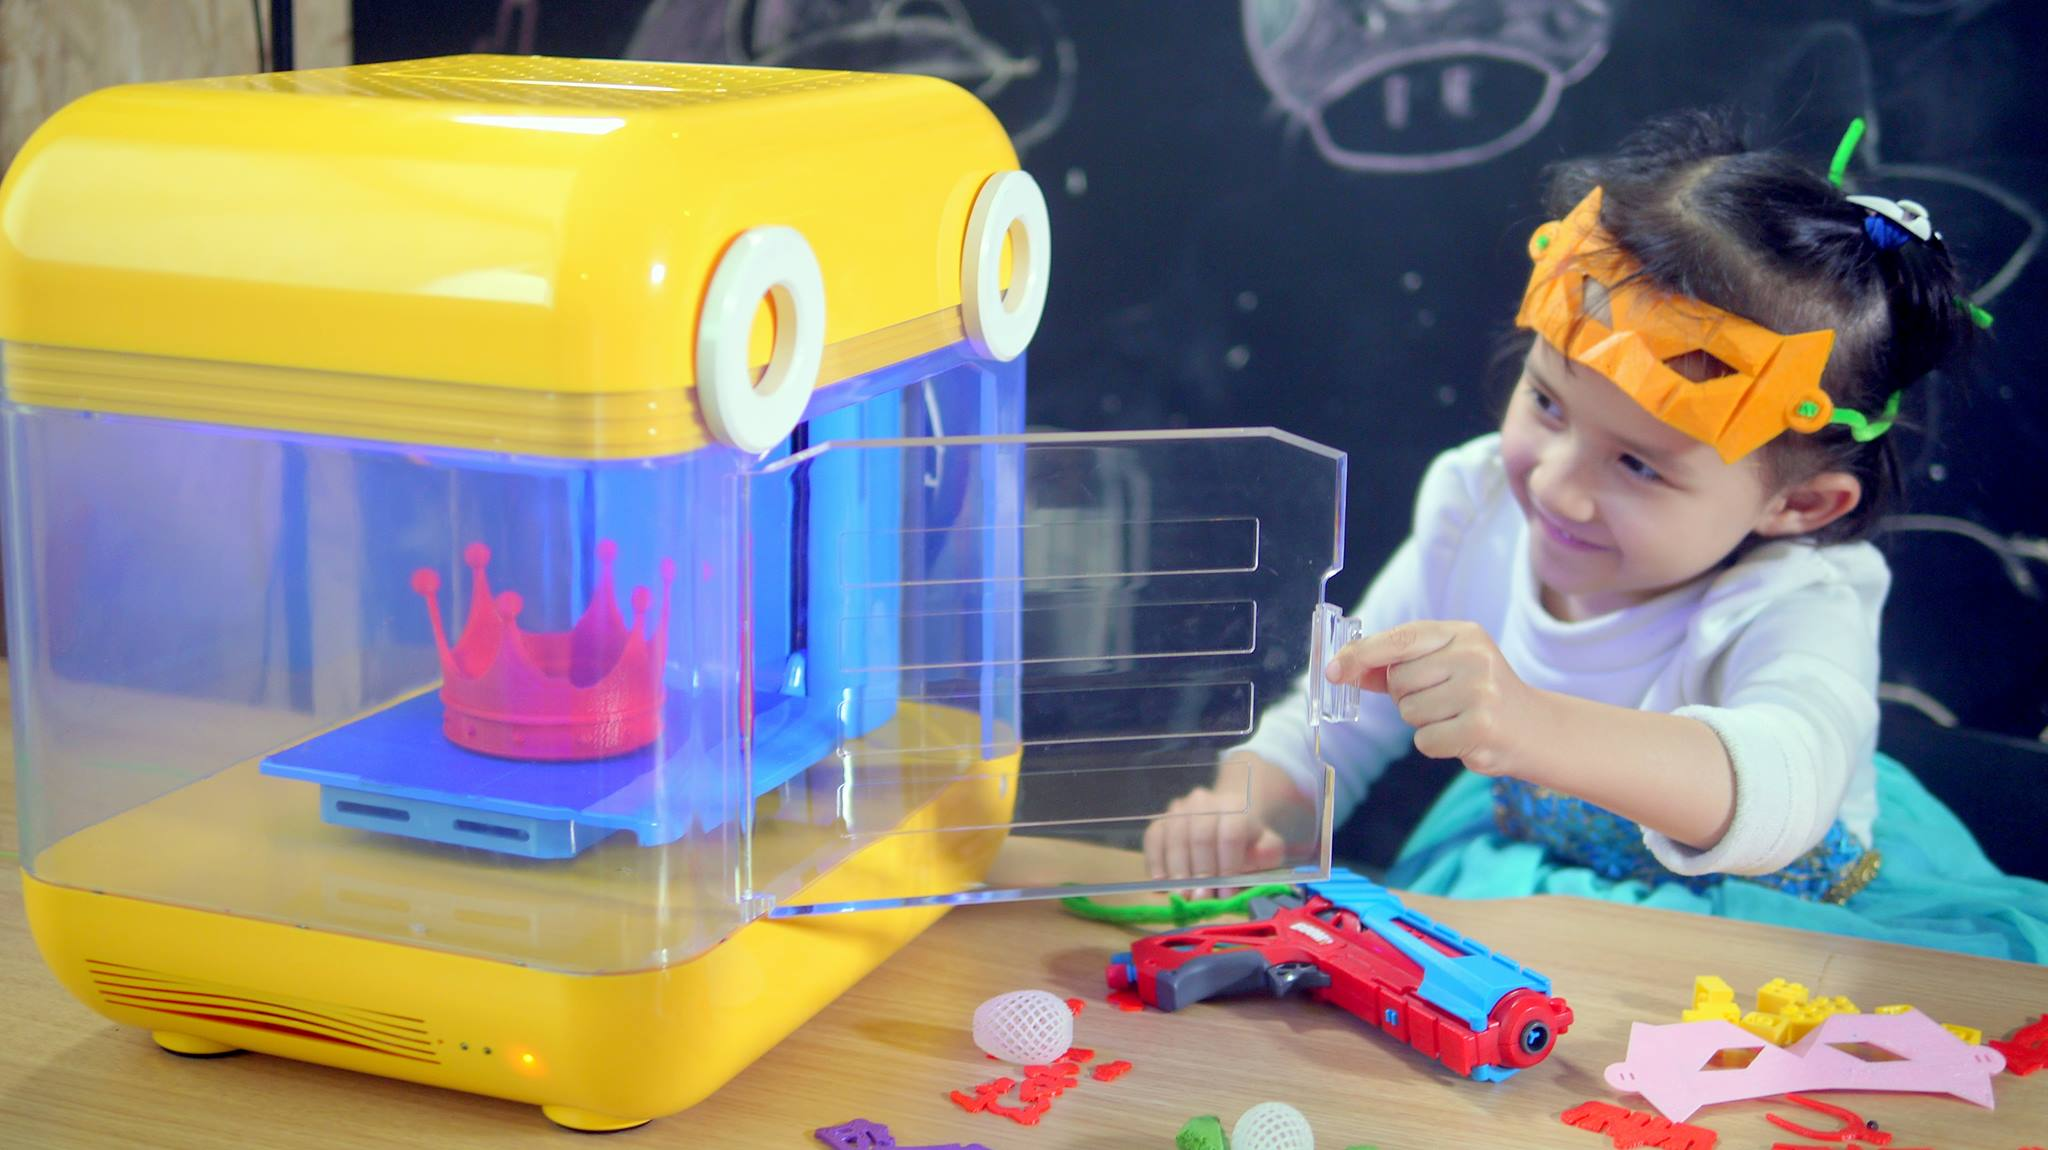 MiniToy 3D Printer is the Kid-friendly Making Machine For ...